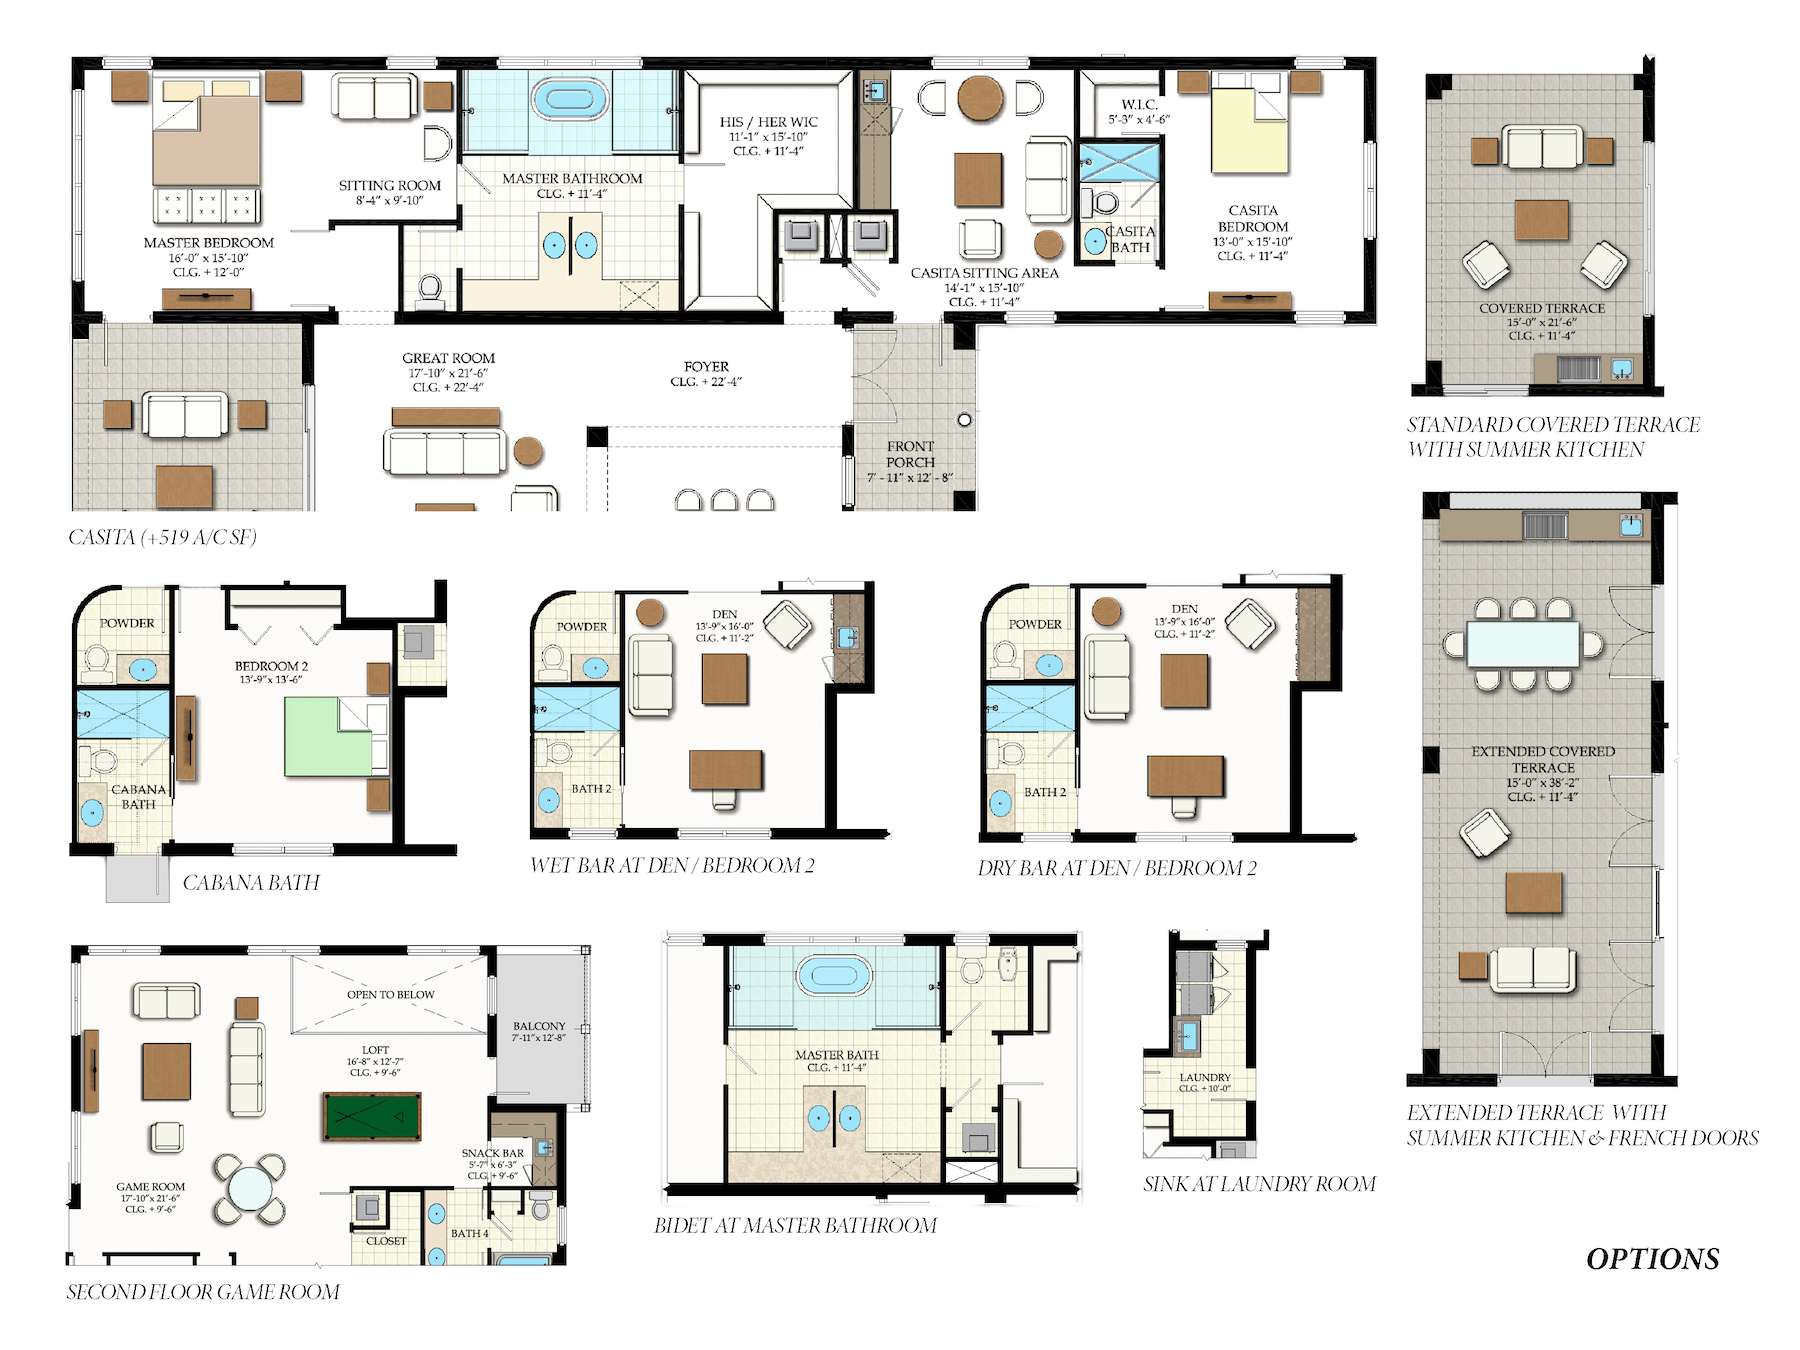 Nouvelle Options: Additional options to customize floor plan